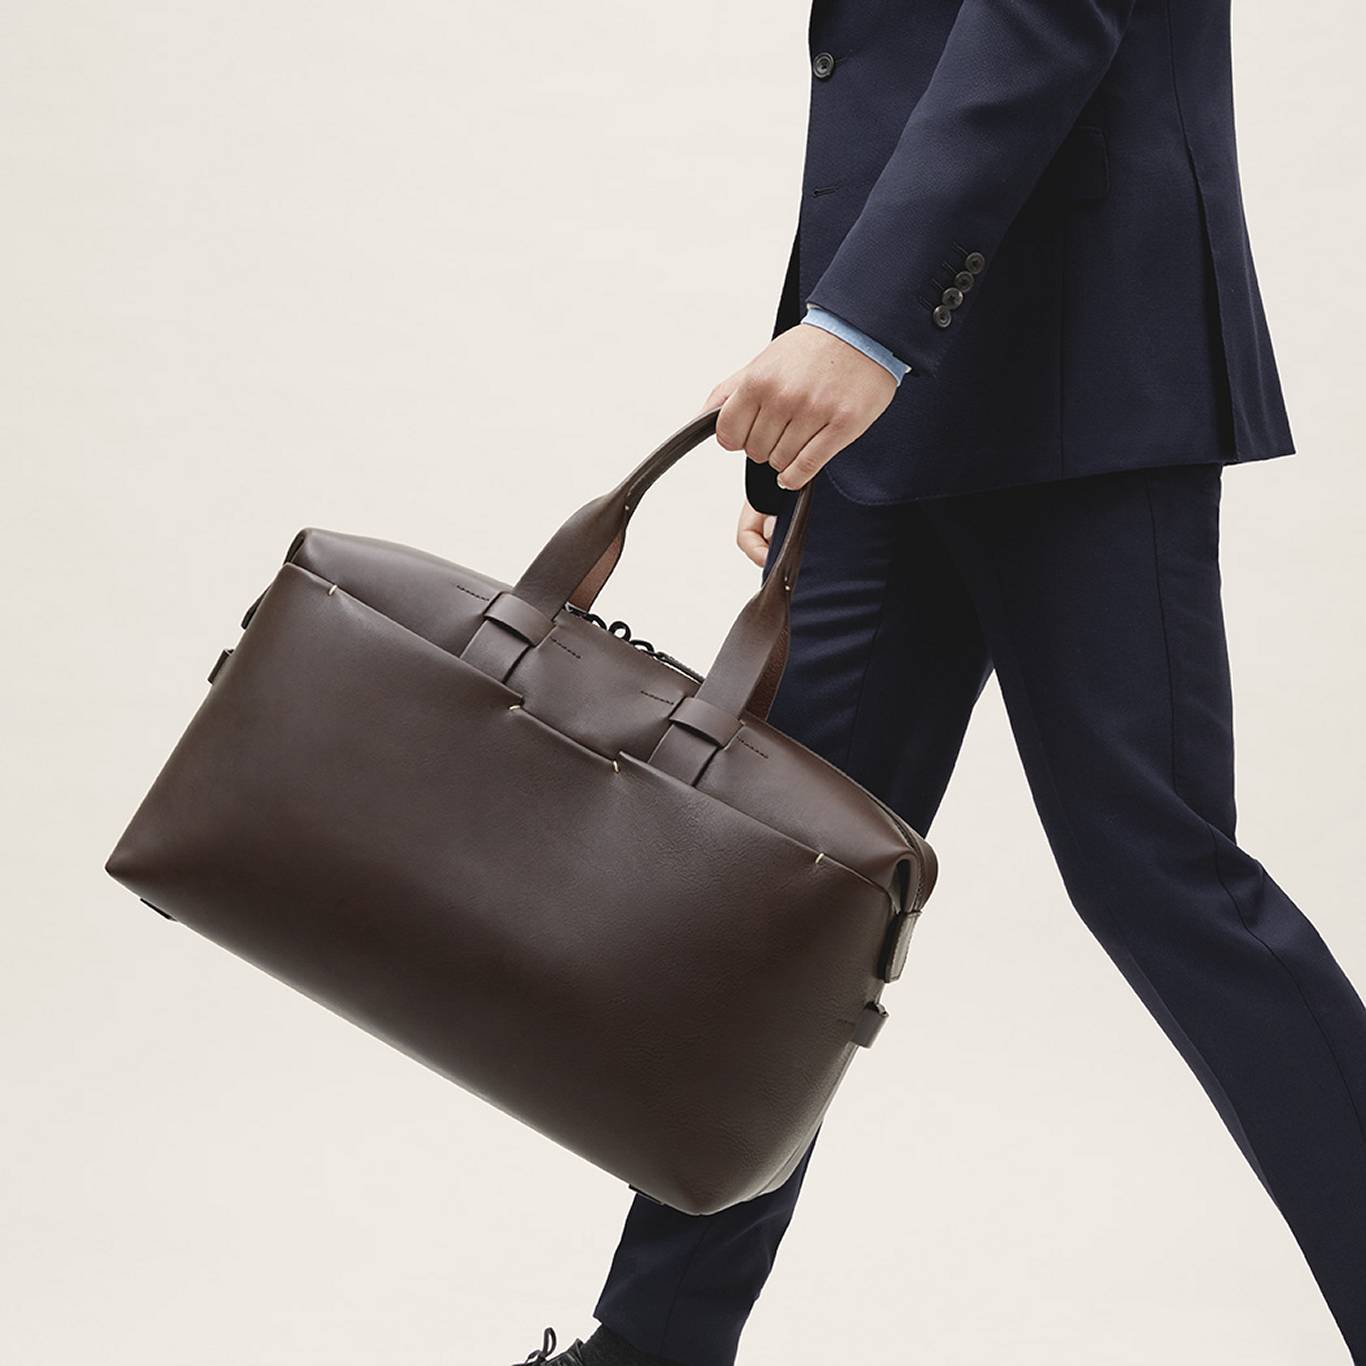 46d2a718a00d Man with navy blue suit carrying Troubadour s brown leather weekend bag